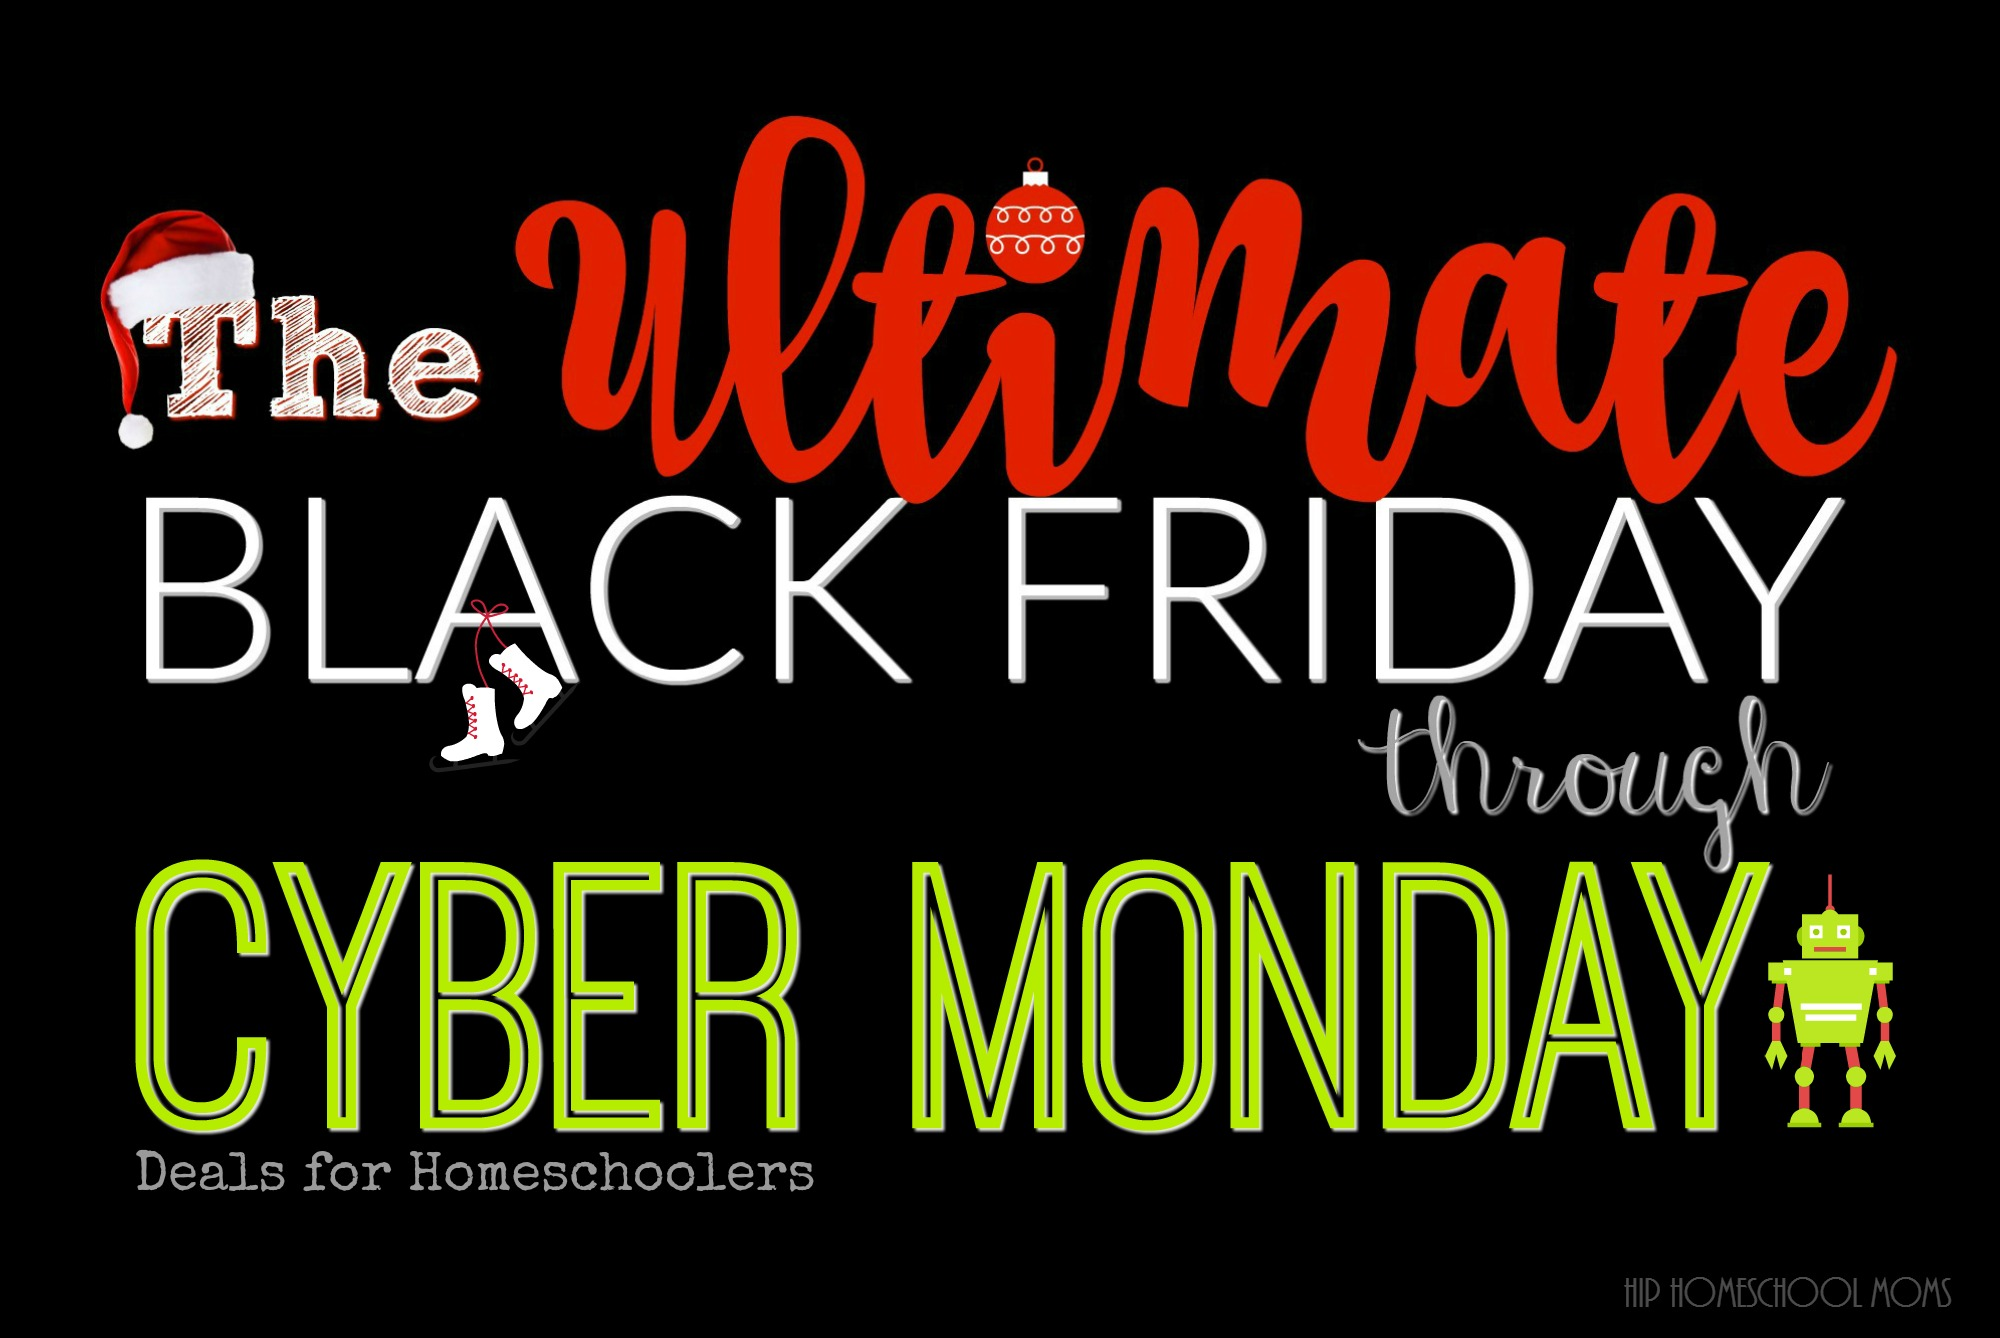 the ultimate black friday through cyber monday deals guide for homeschoolers hip homeschool moms. Black Bedroom Furniture Sets. Home Design Ideas